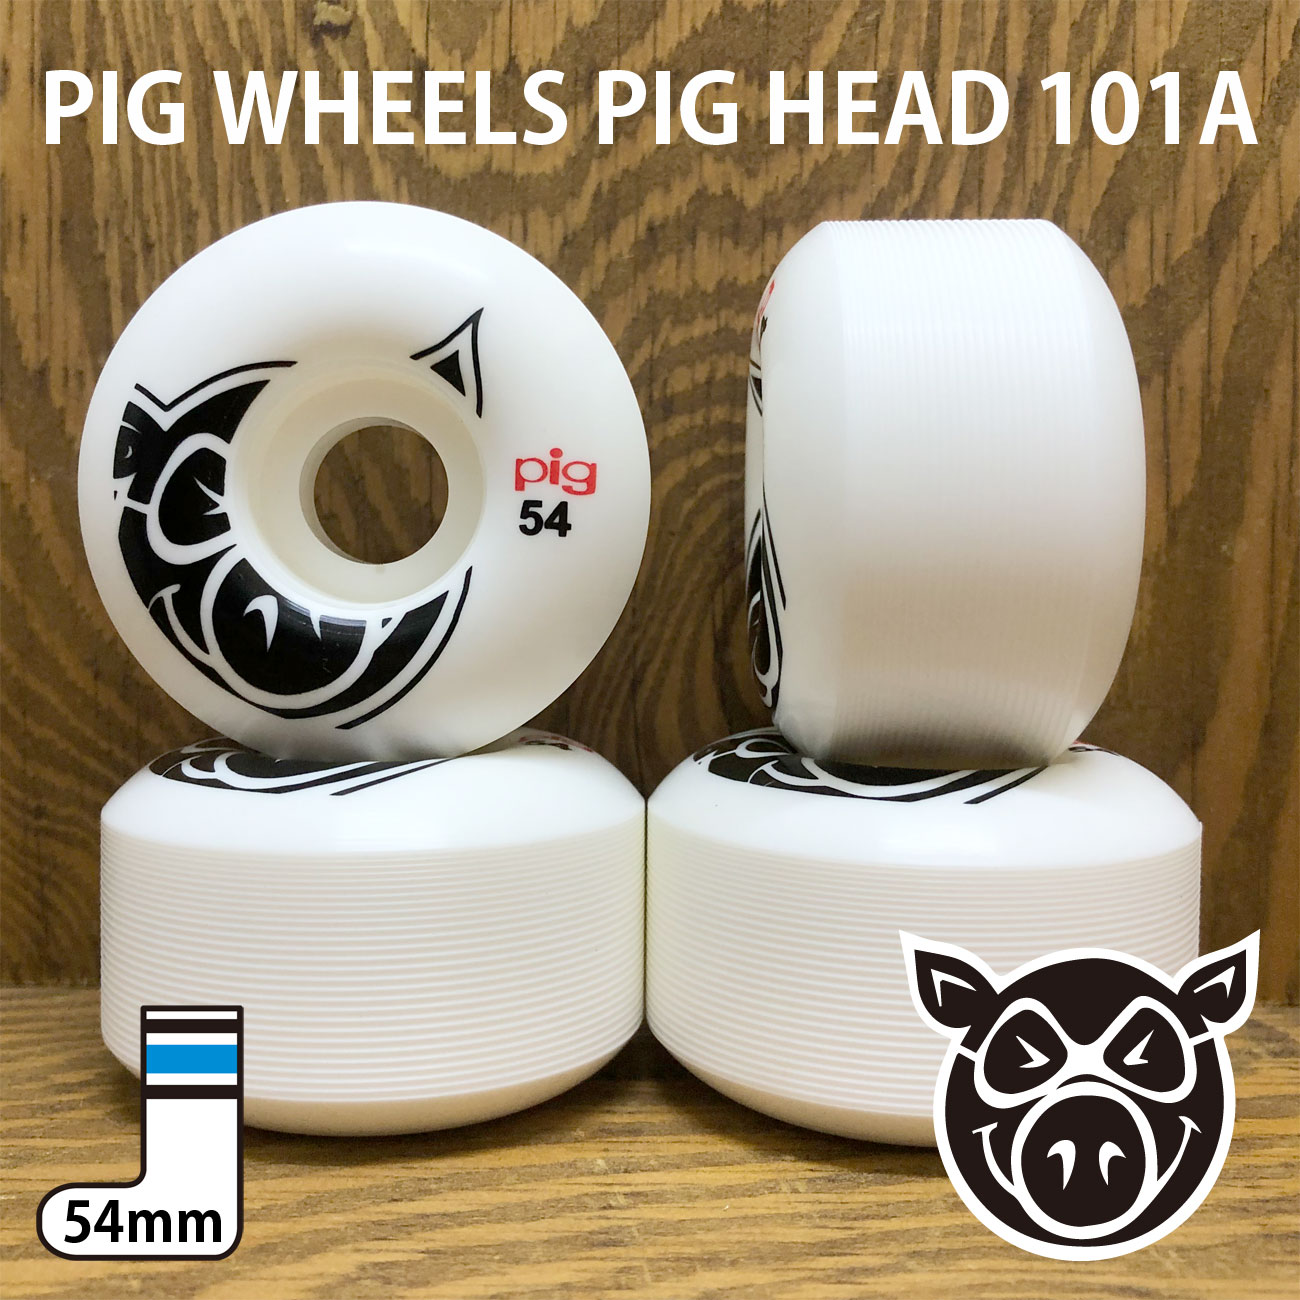 PIG WHEELS PIG HEAD 101A 54mm